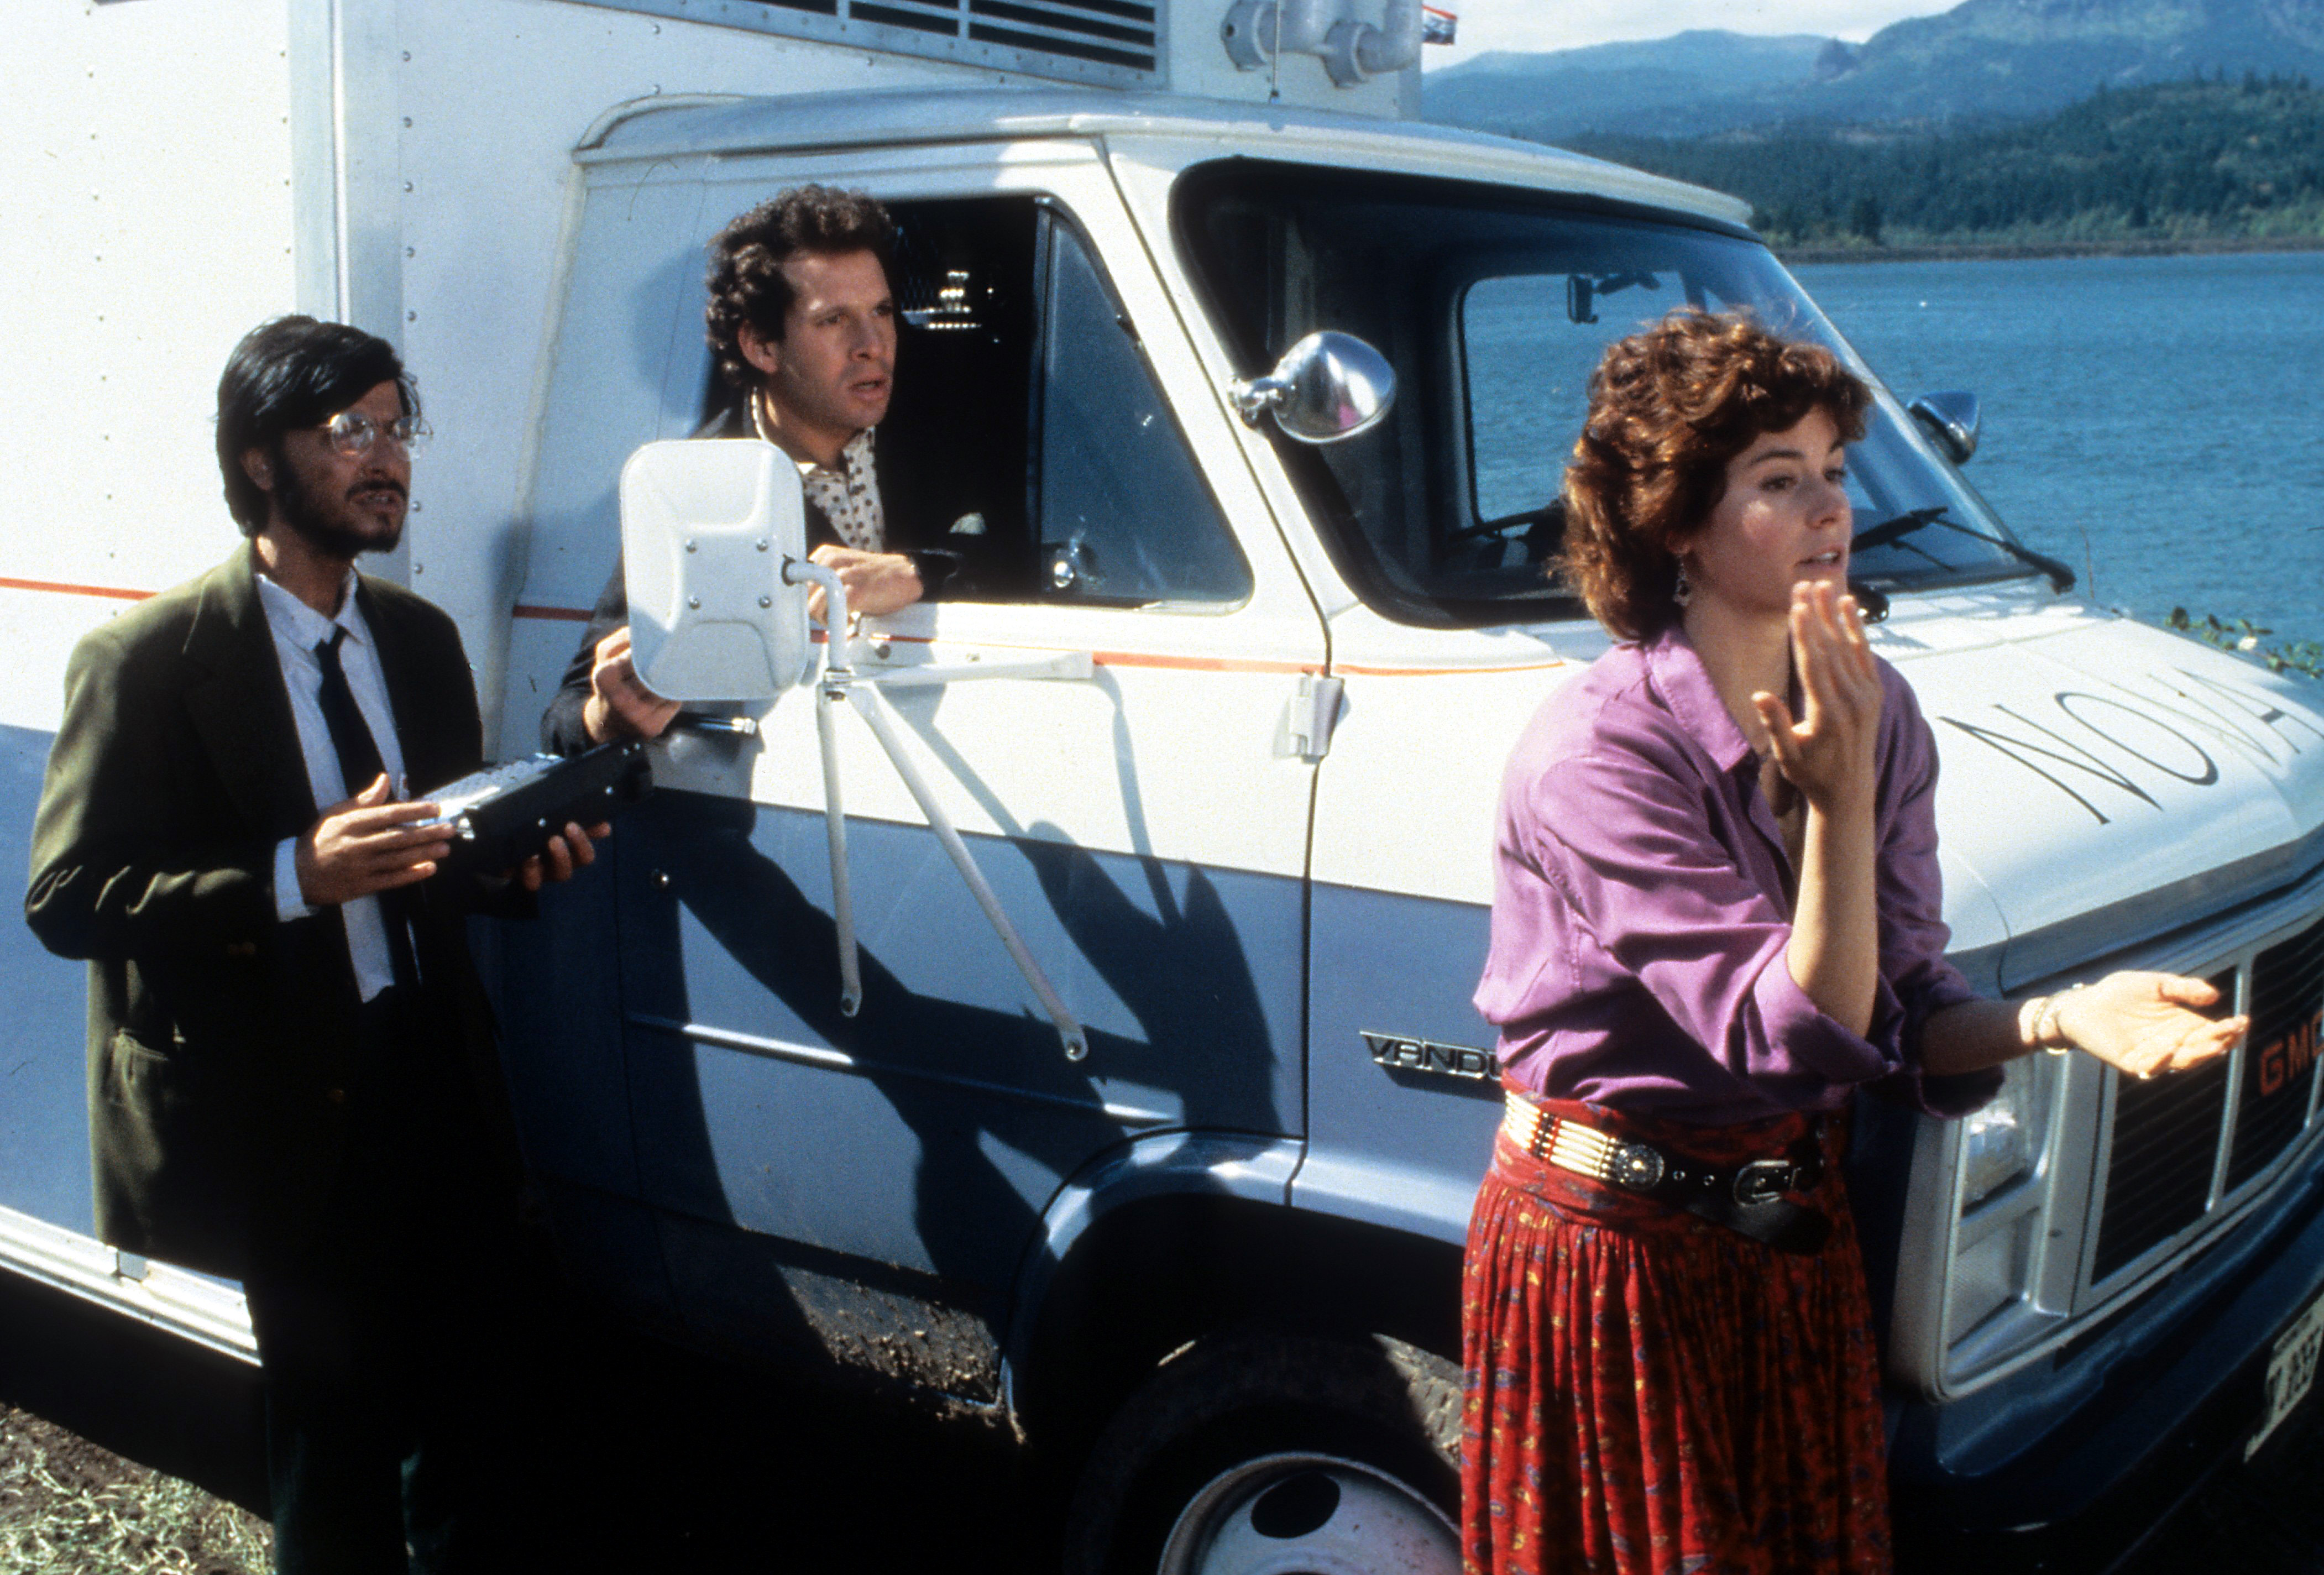 Steve Guttenberg, Ally Sheedy, and Fisher Stevens in Short Circuit (1986)